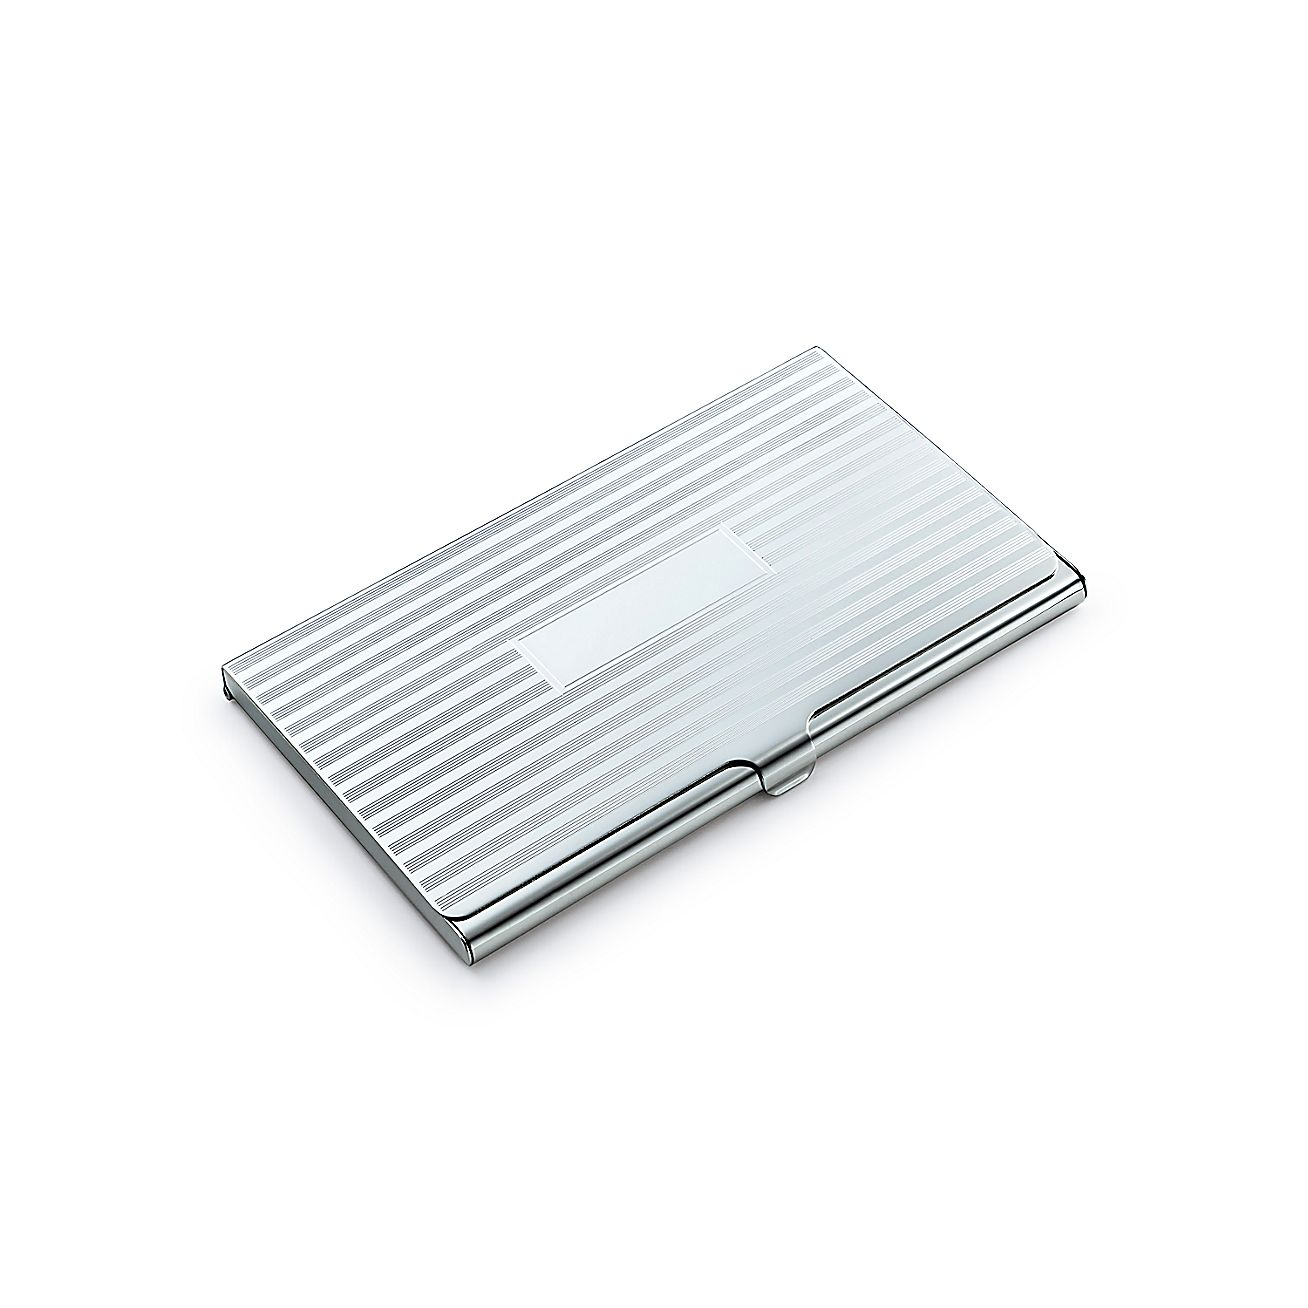 Engine-turned business card case in sterling silver. | Tiffany & Co.